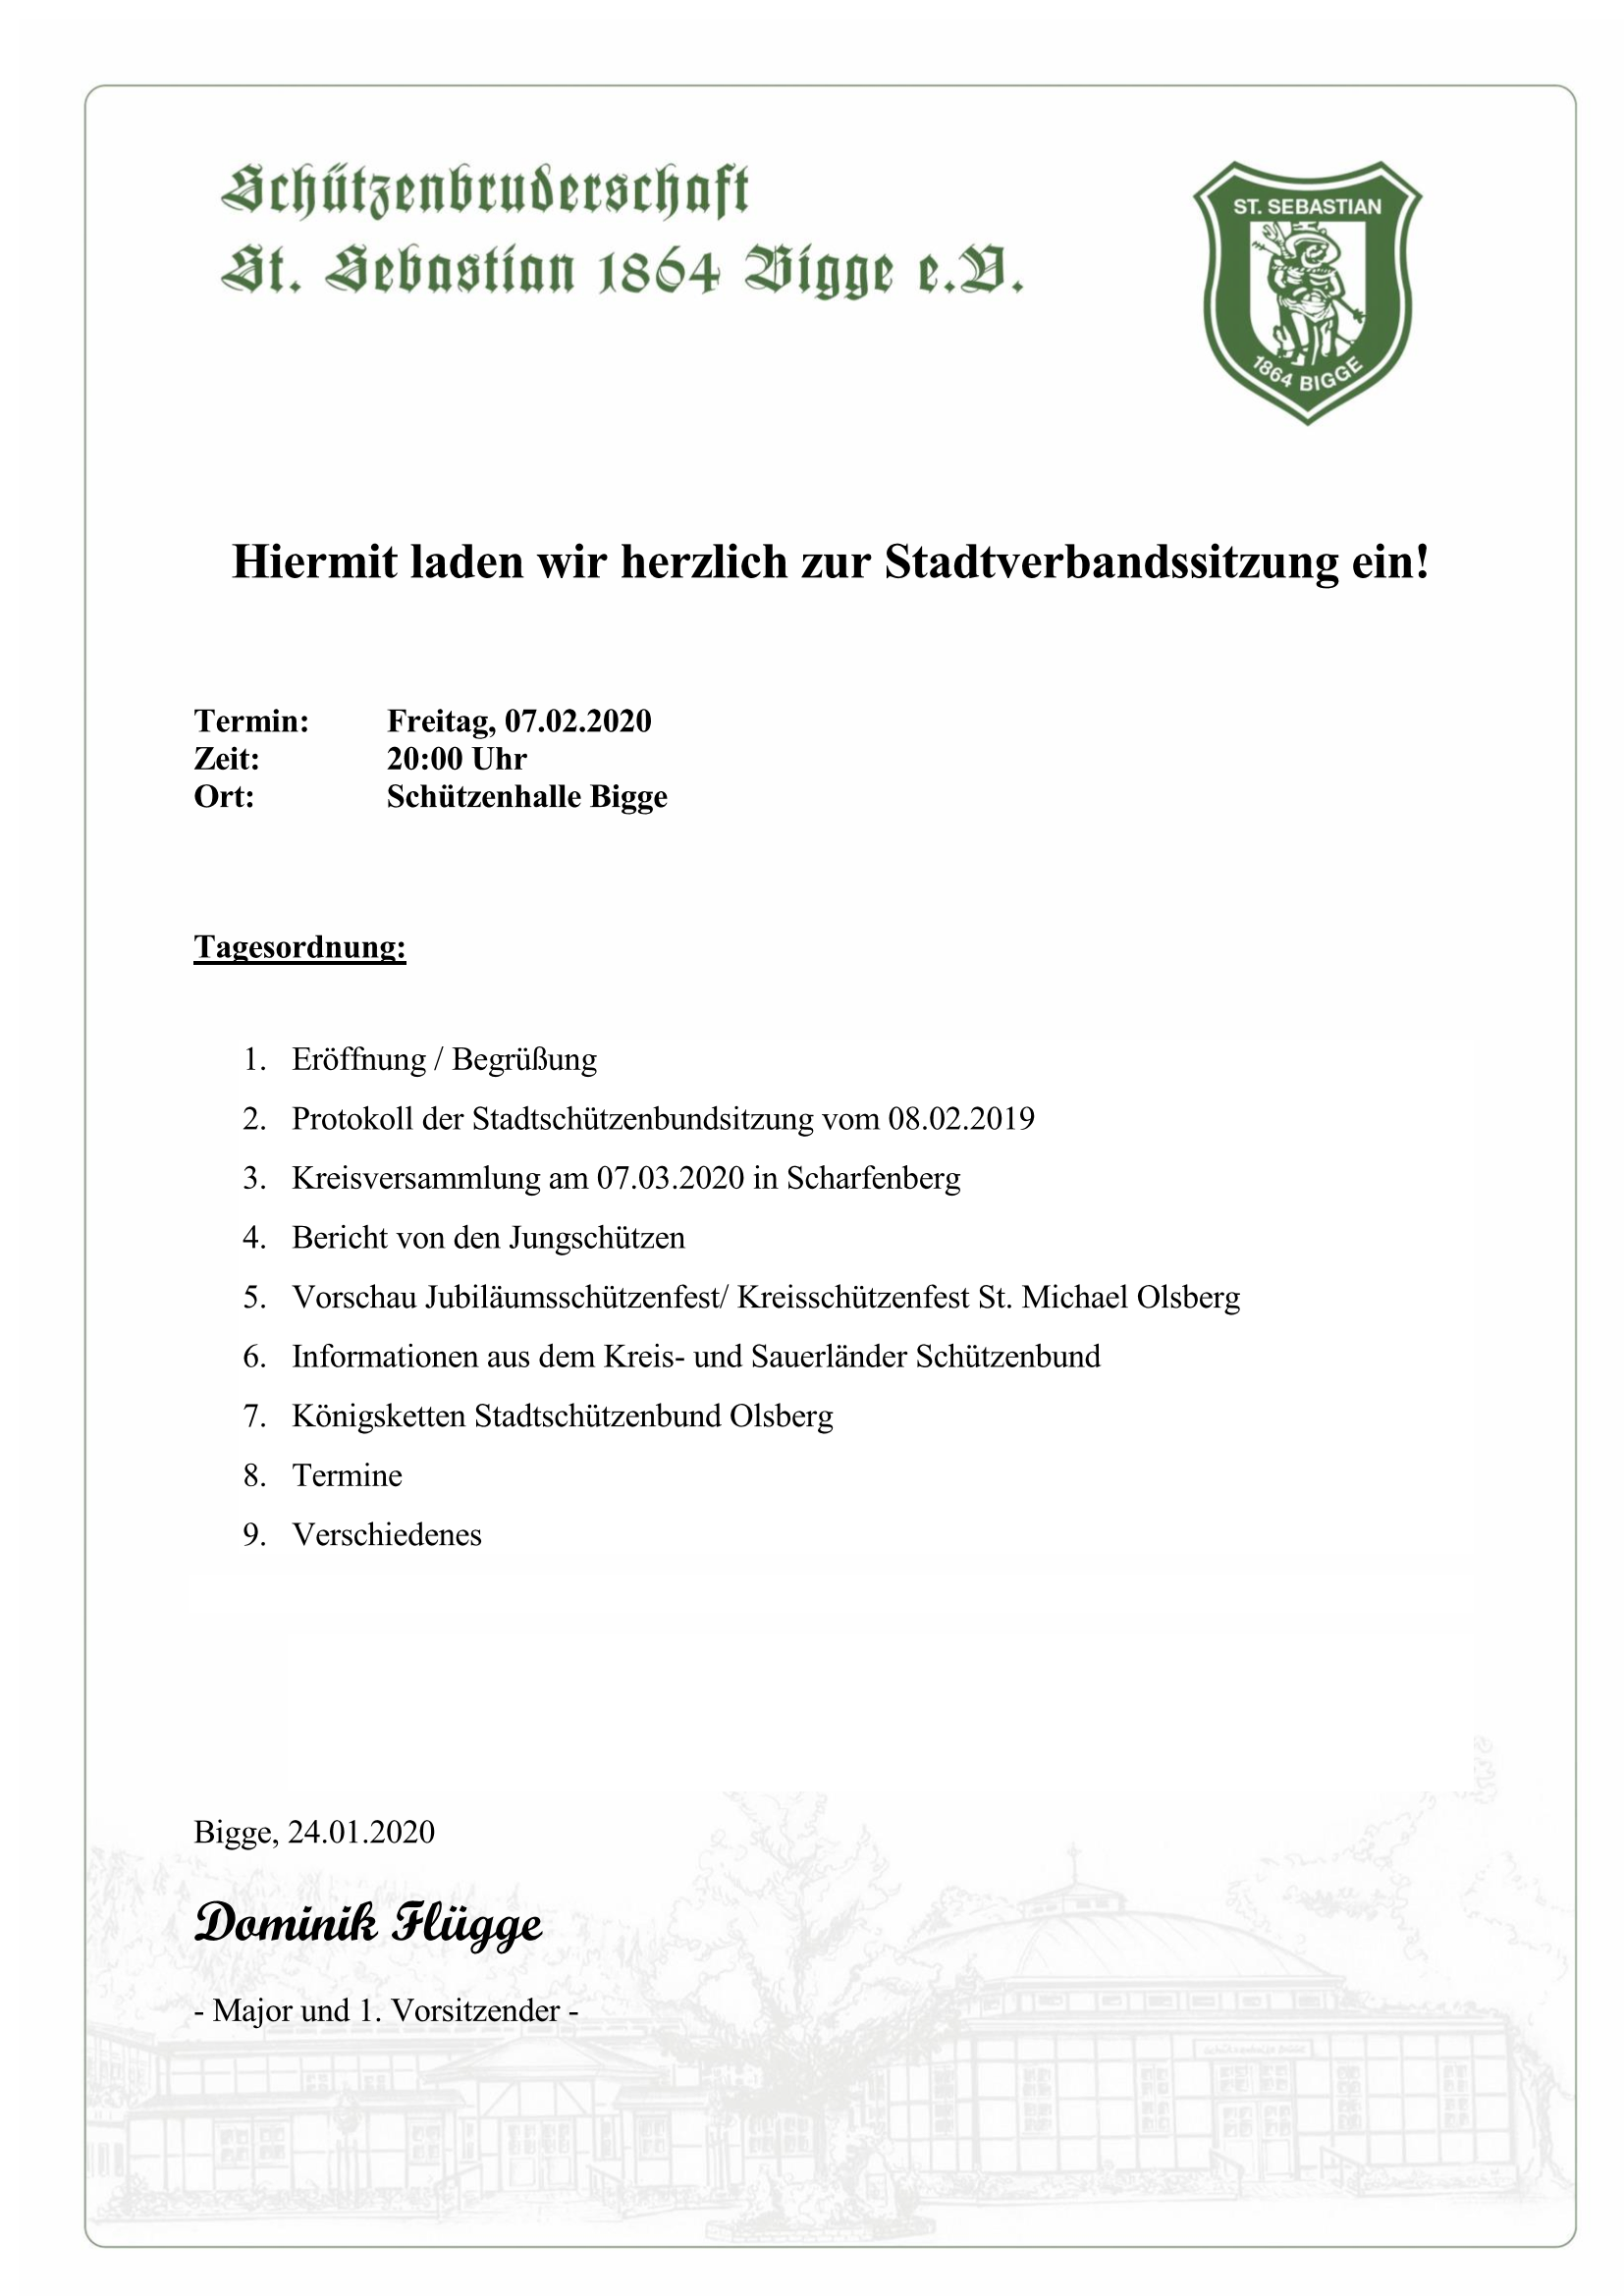 Tagesordnung Stadtverbandssitzung 2020 online Page 1